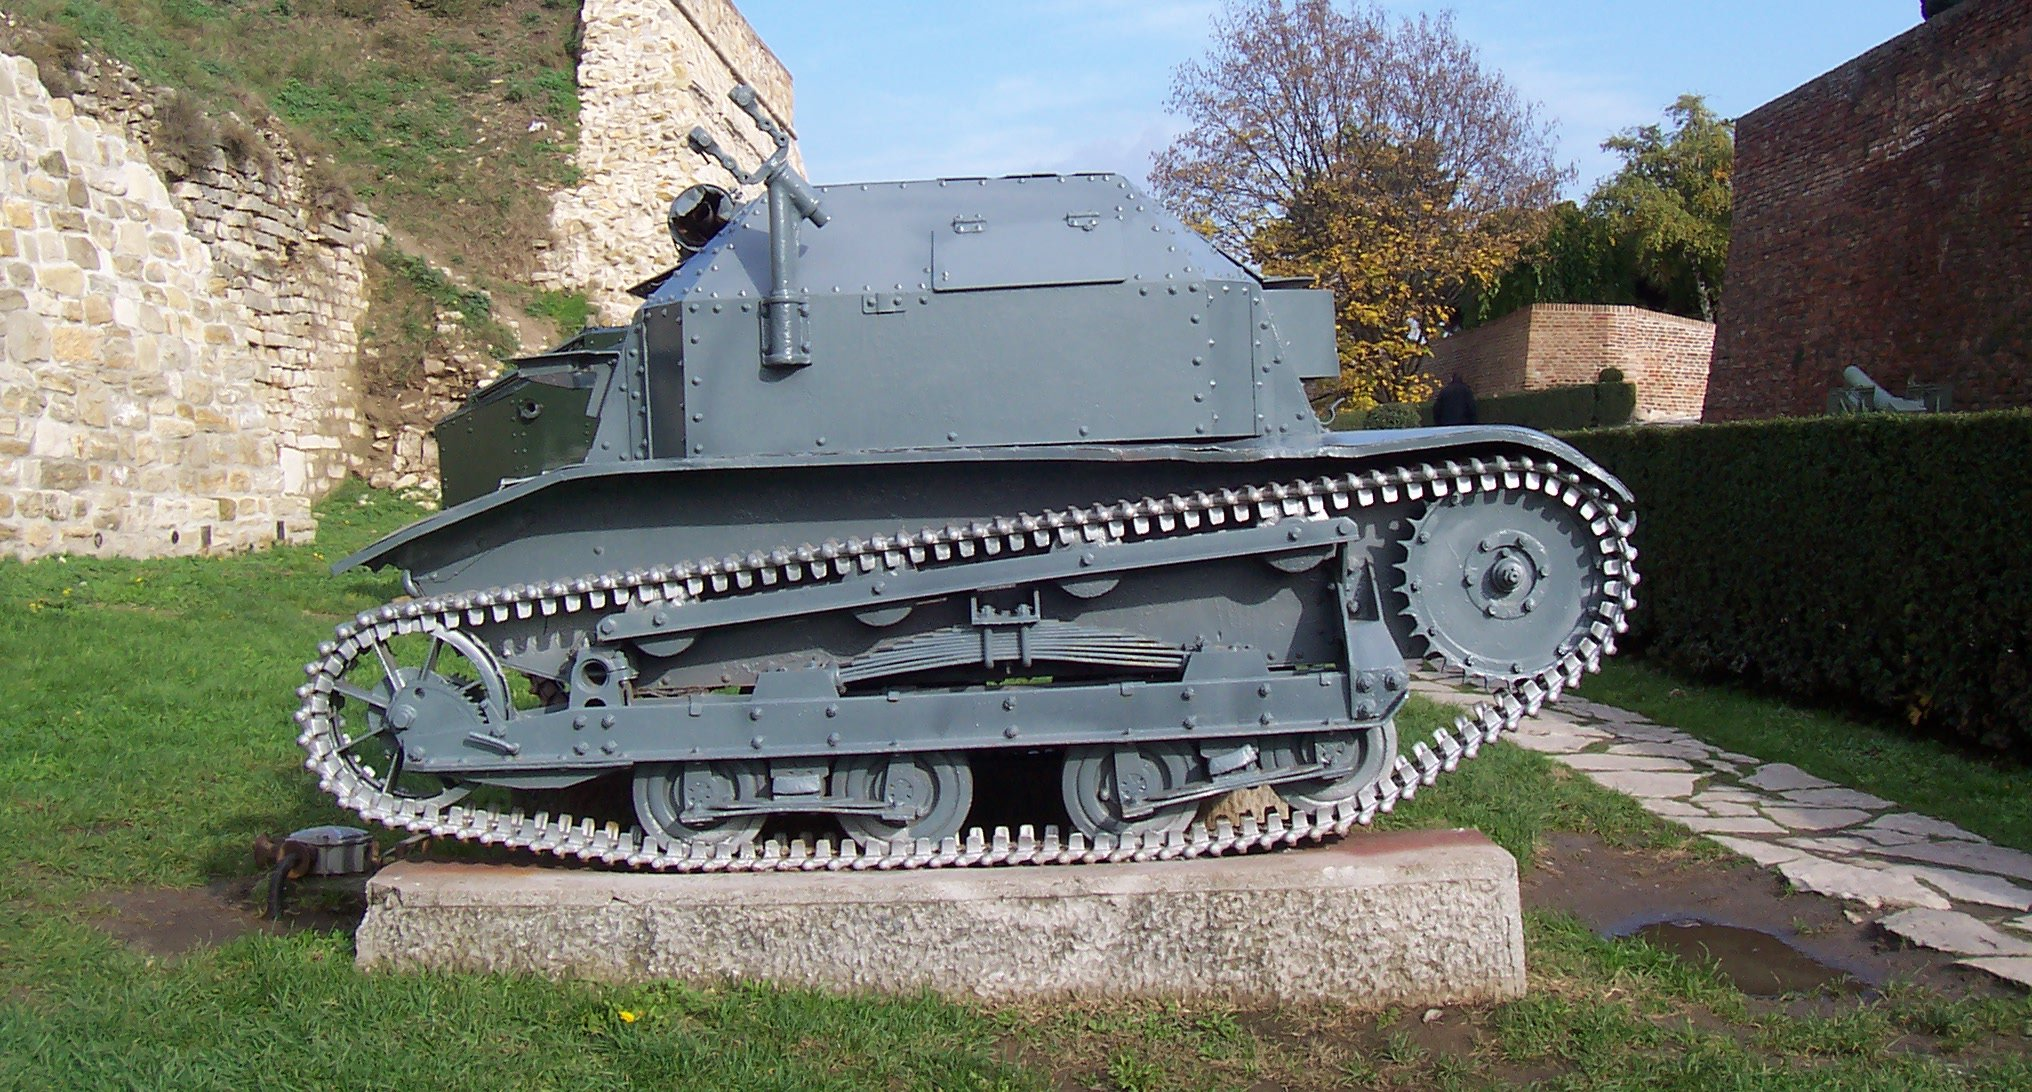 The same TKF in the Belgrade Military Museum